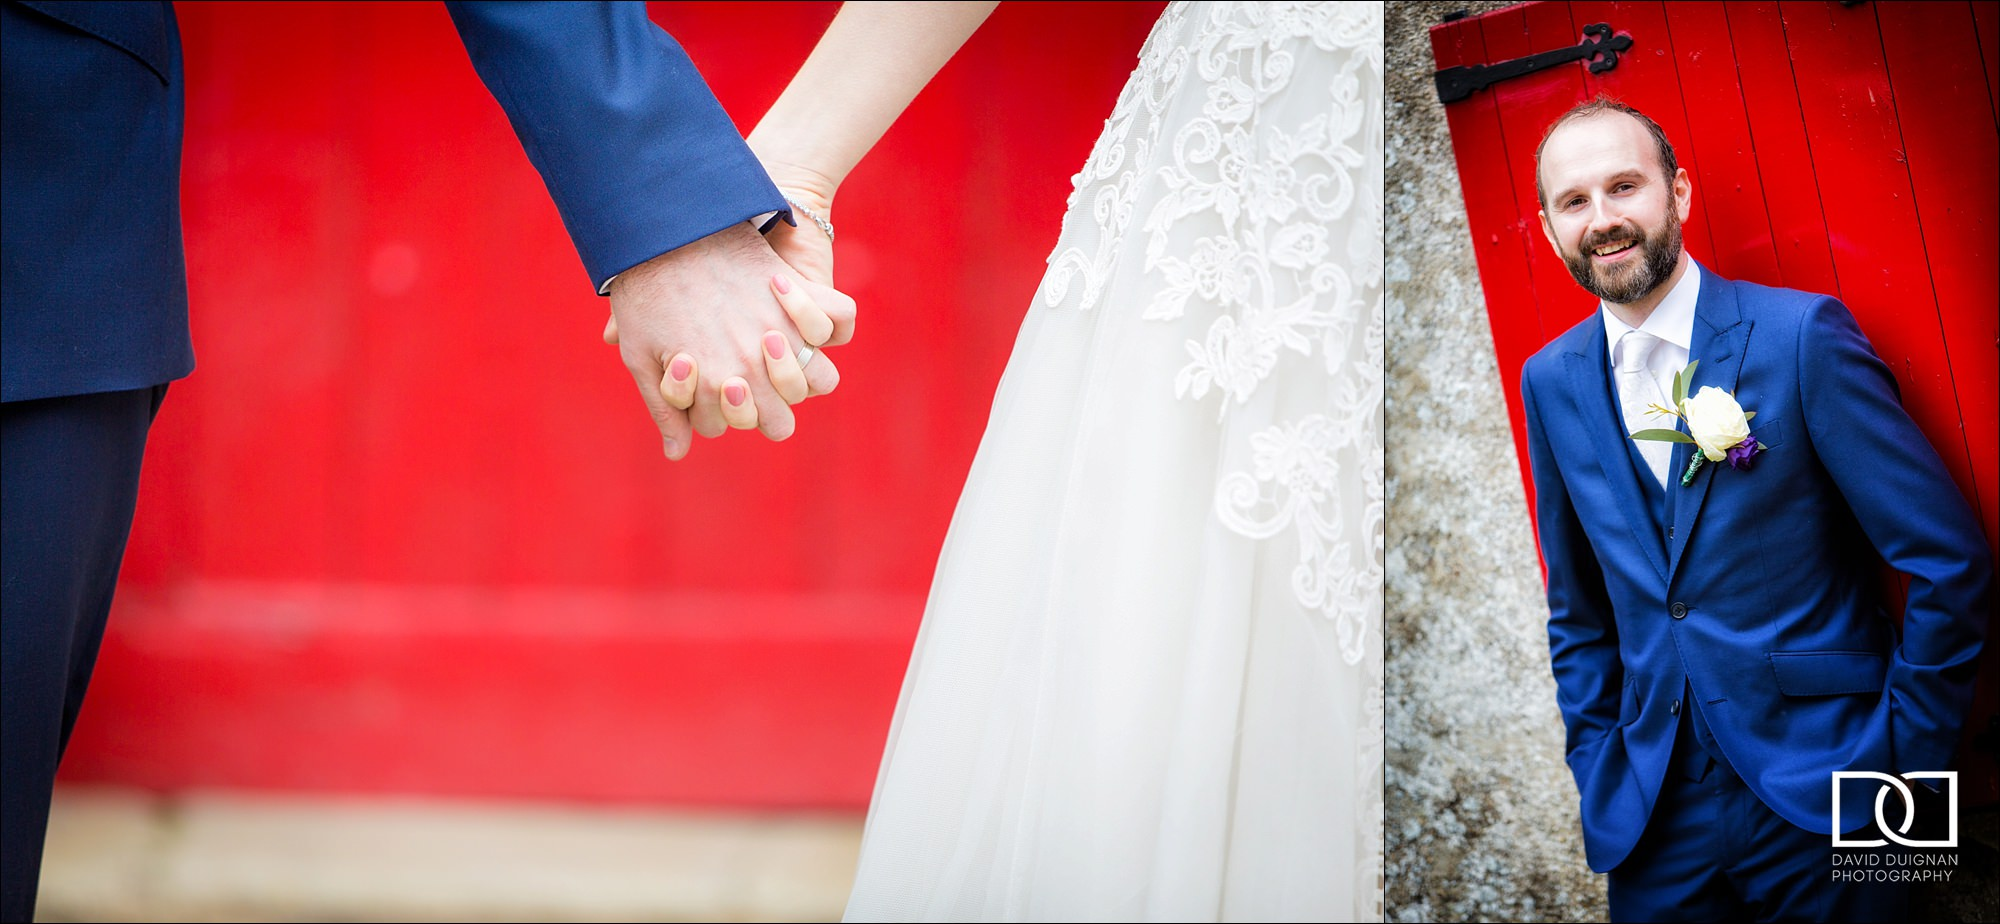 dublin wedding photographer david duignan photography horetown house wedding wexford Ireland 0019